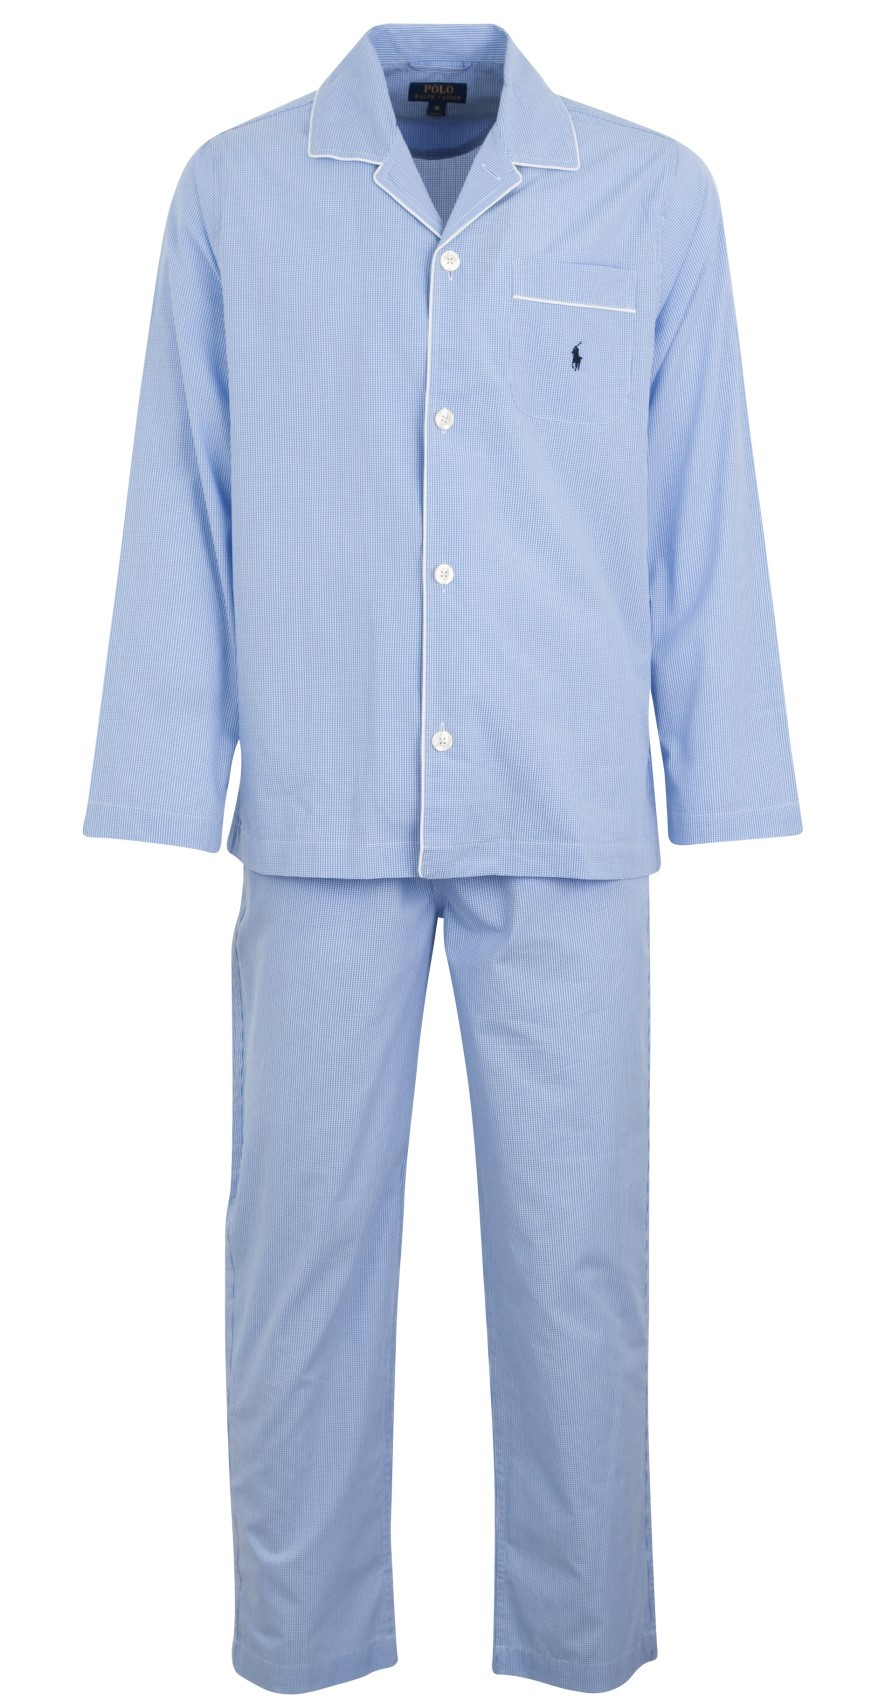 ralph lauren pyjama light blue gingham. Black Bedroom Furniture Sets. Home Design Ideas